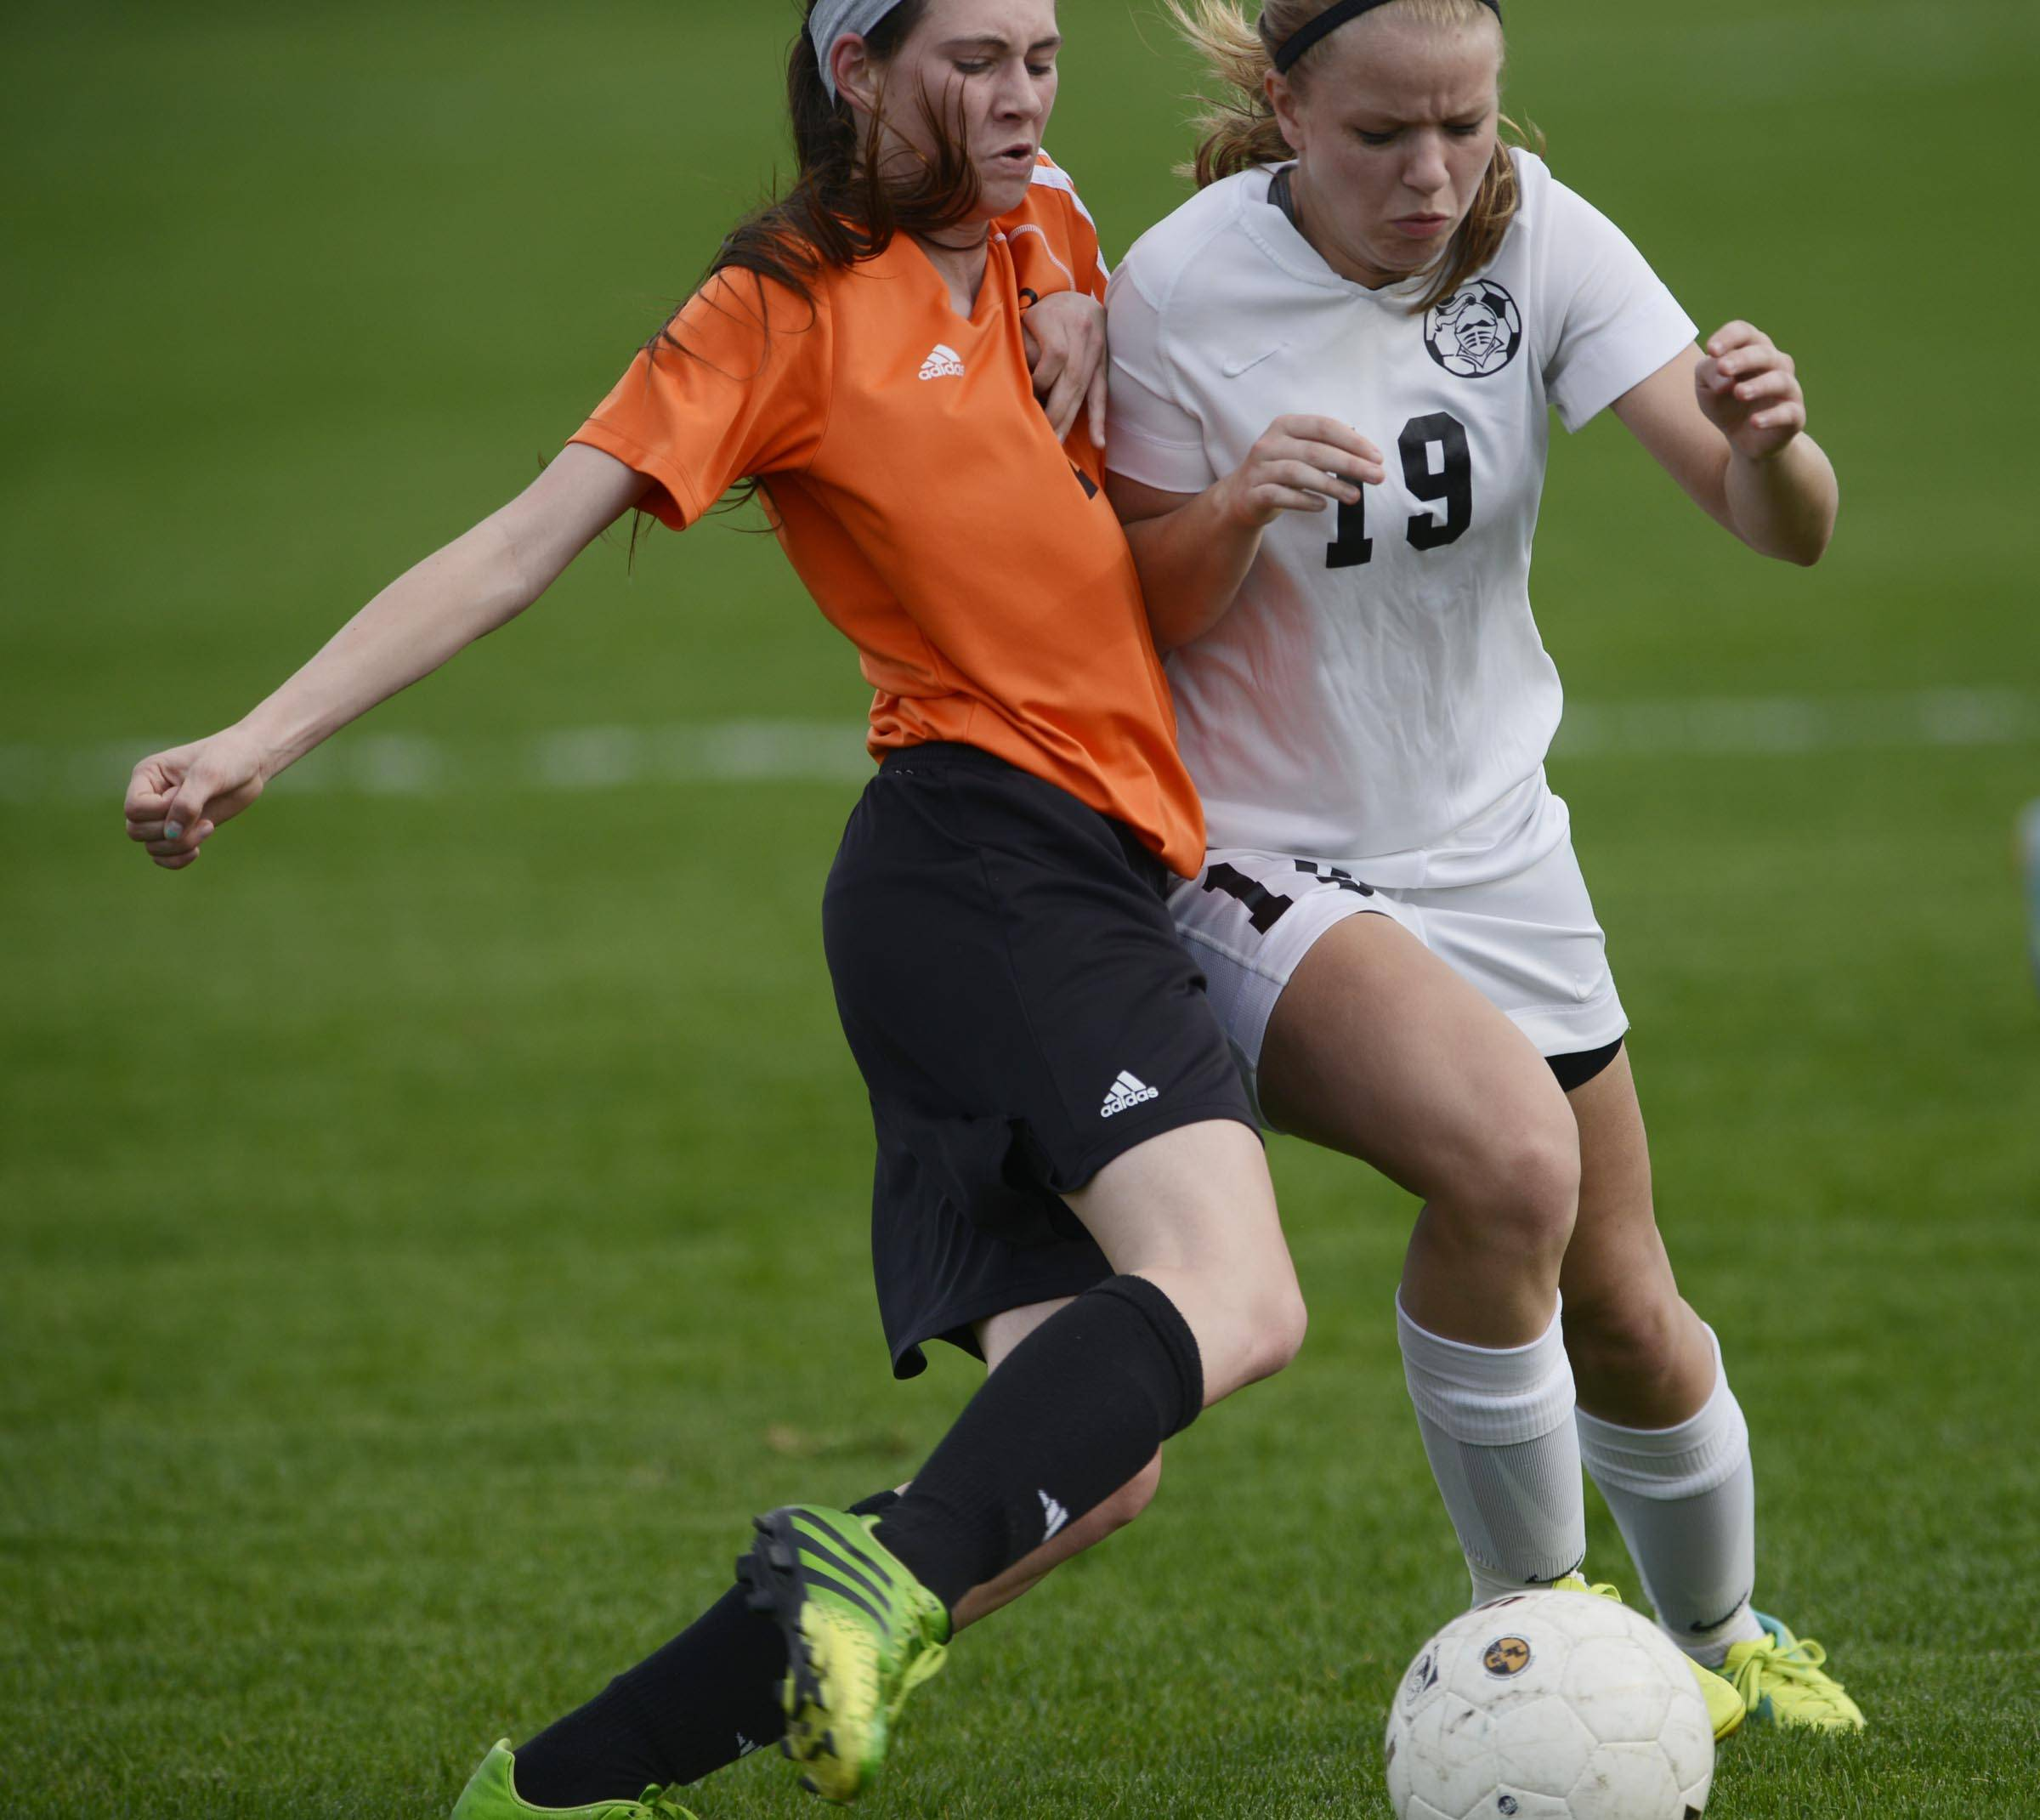 Kaneland's Nicole Koczka, right, competes for the ball Monday in Maple Park.